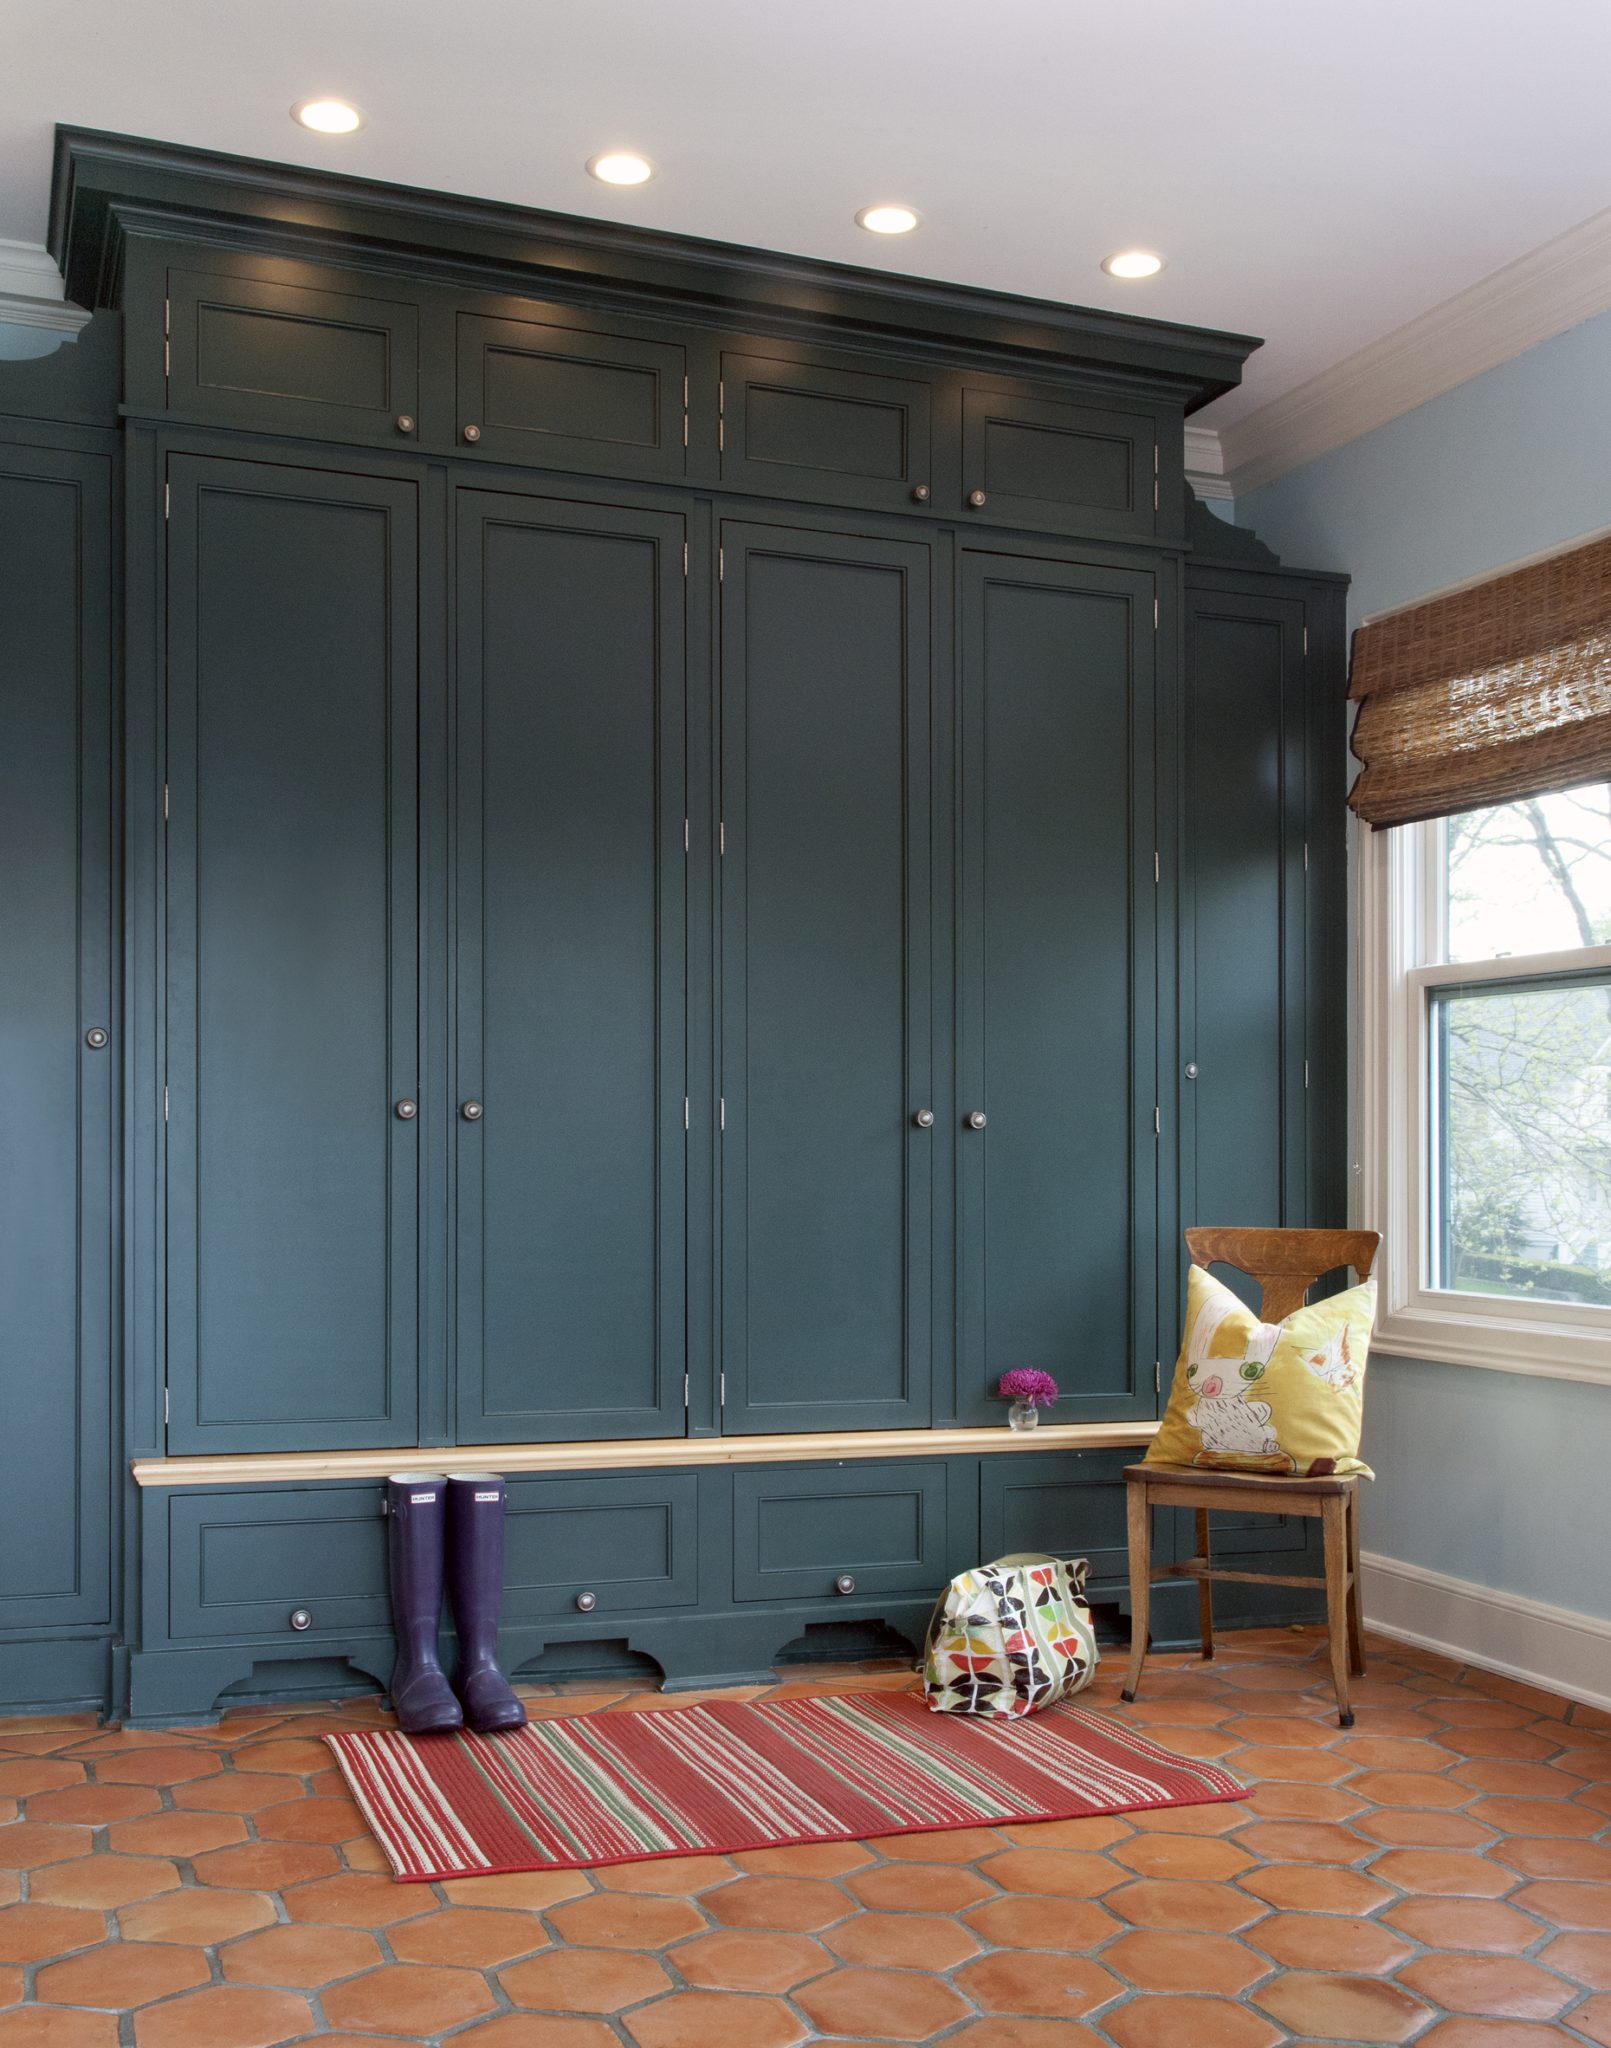 Mudroom Storage Cabinets in Dark Teal Finish by Randall Architects, Inc.